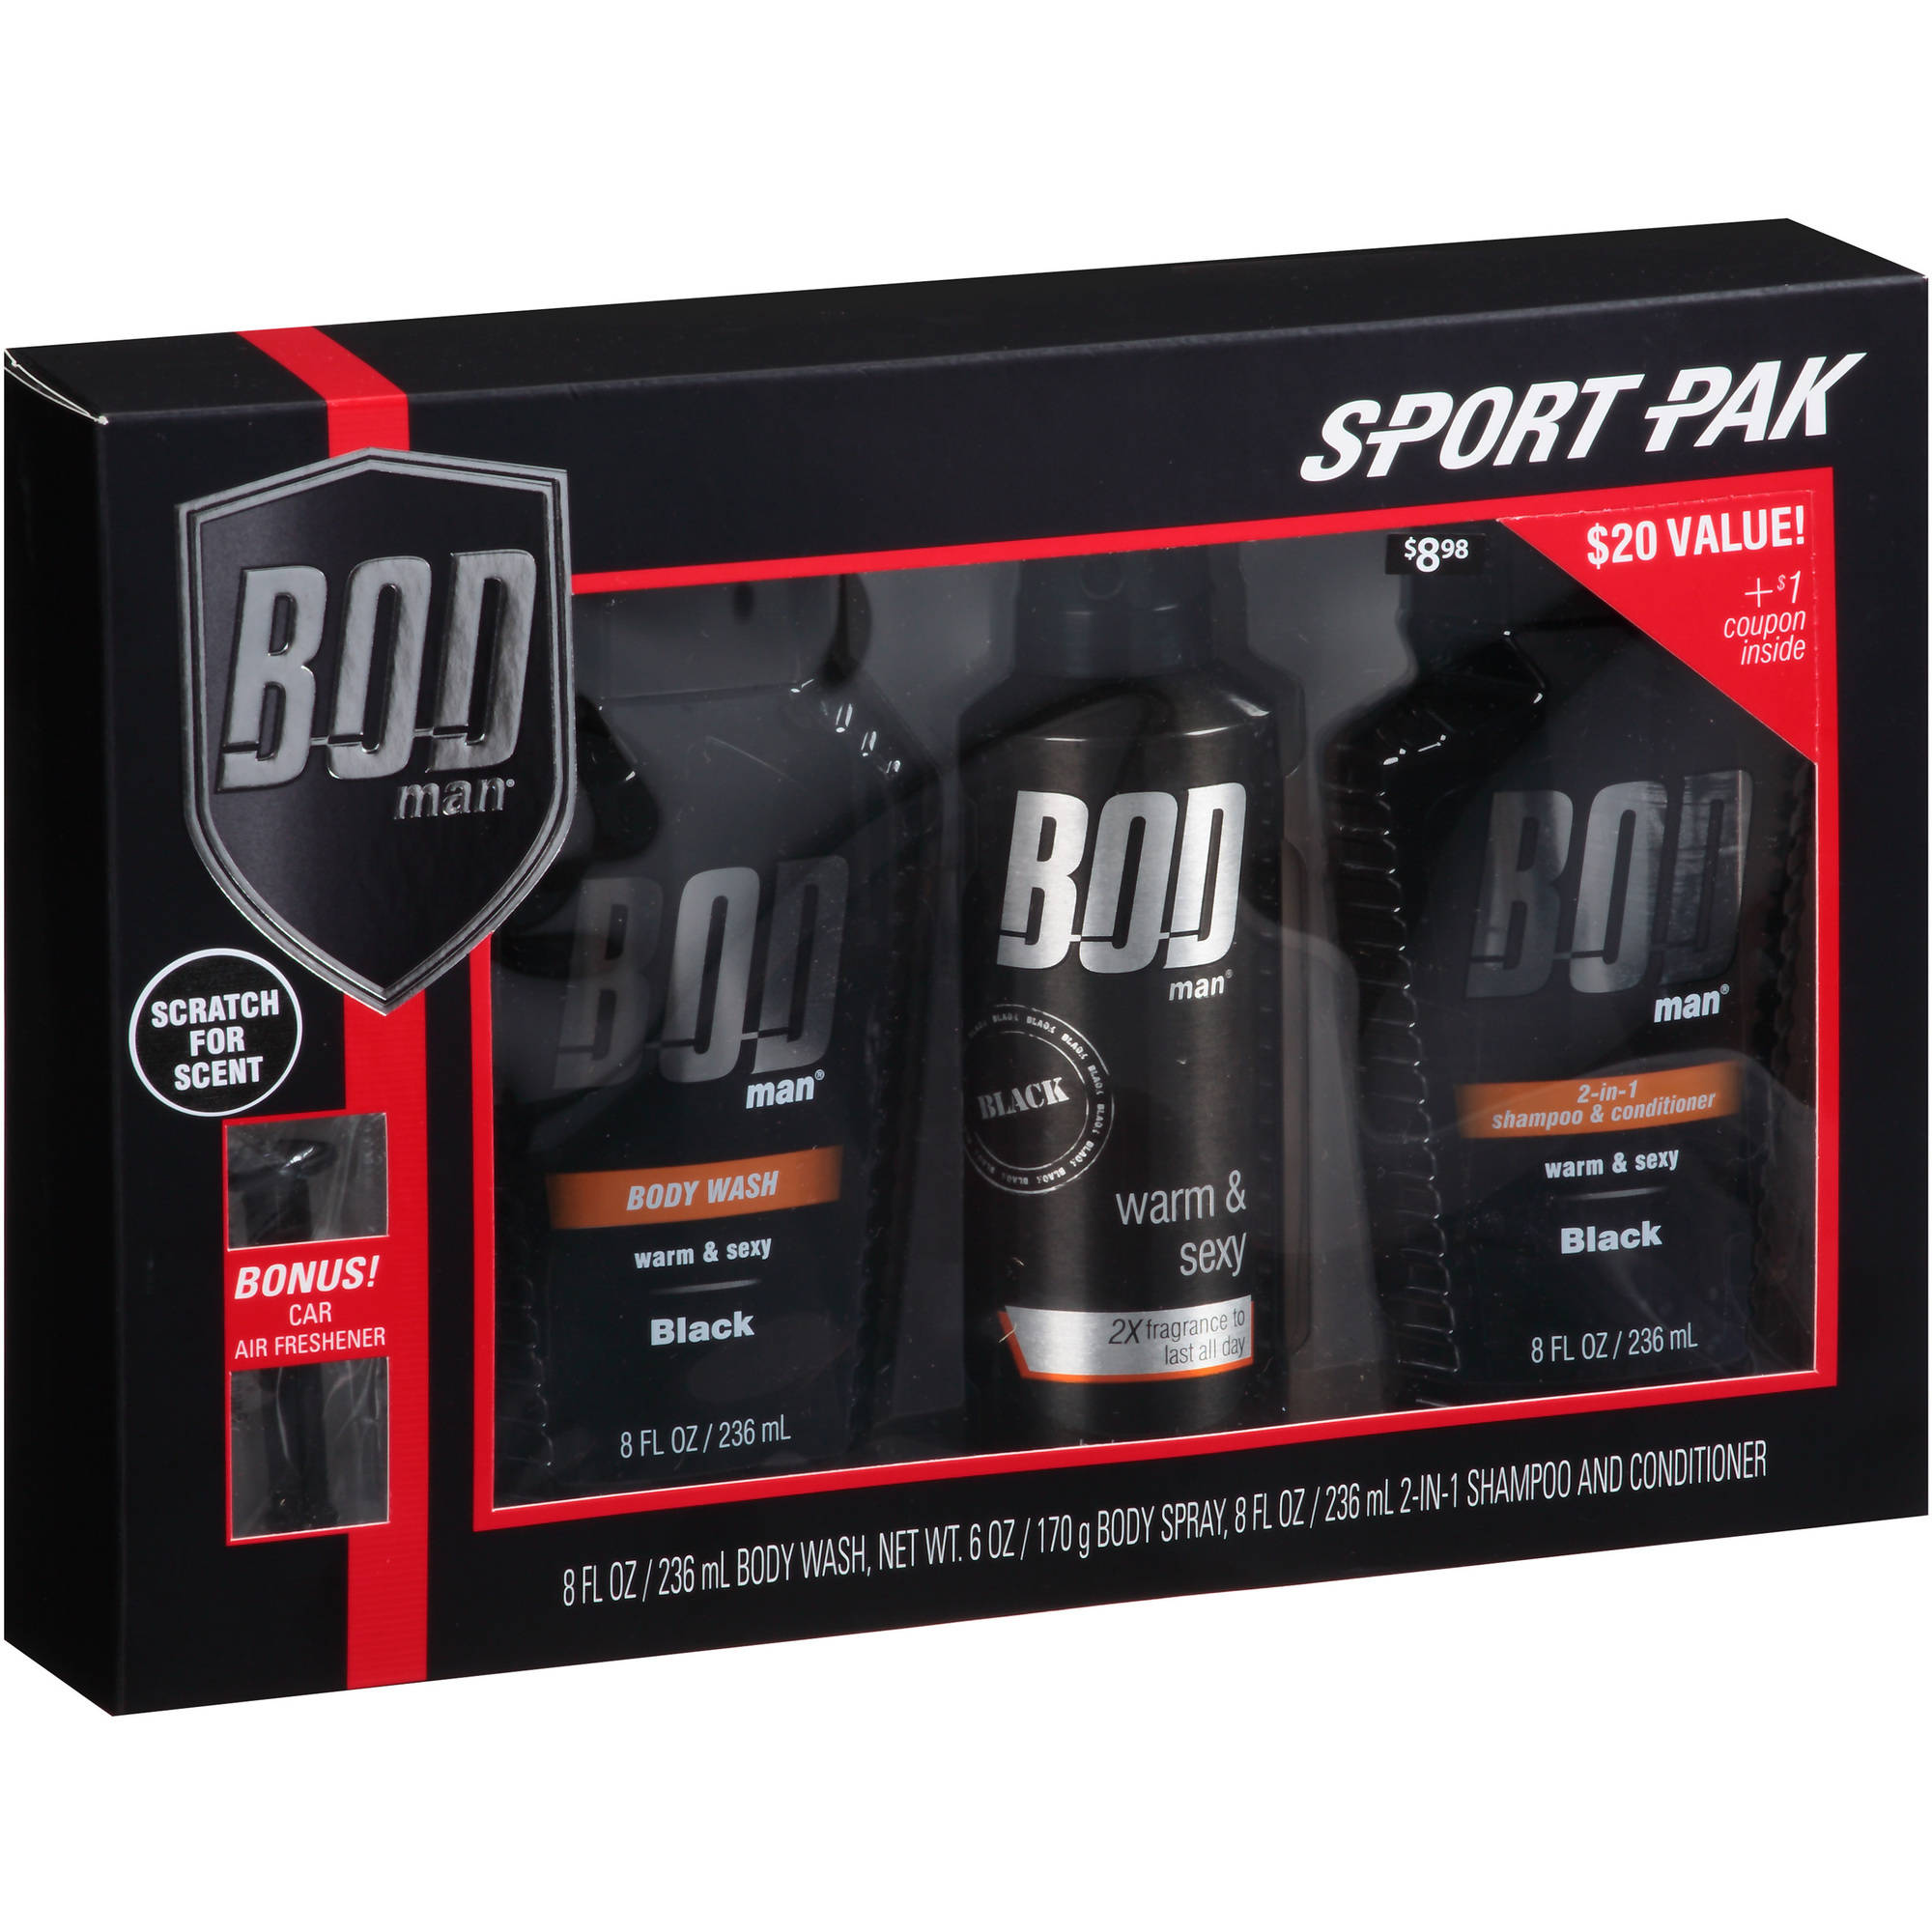 Bod Man Sport Pak, Black, 3 pc